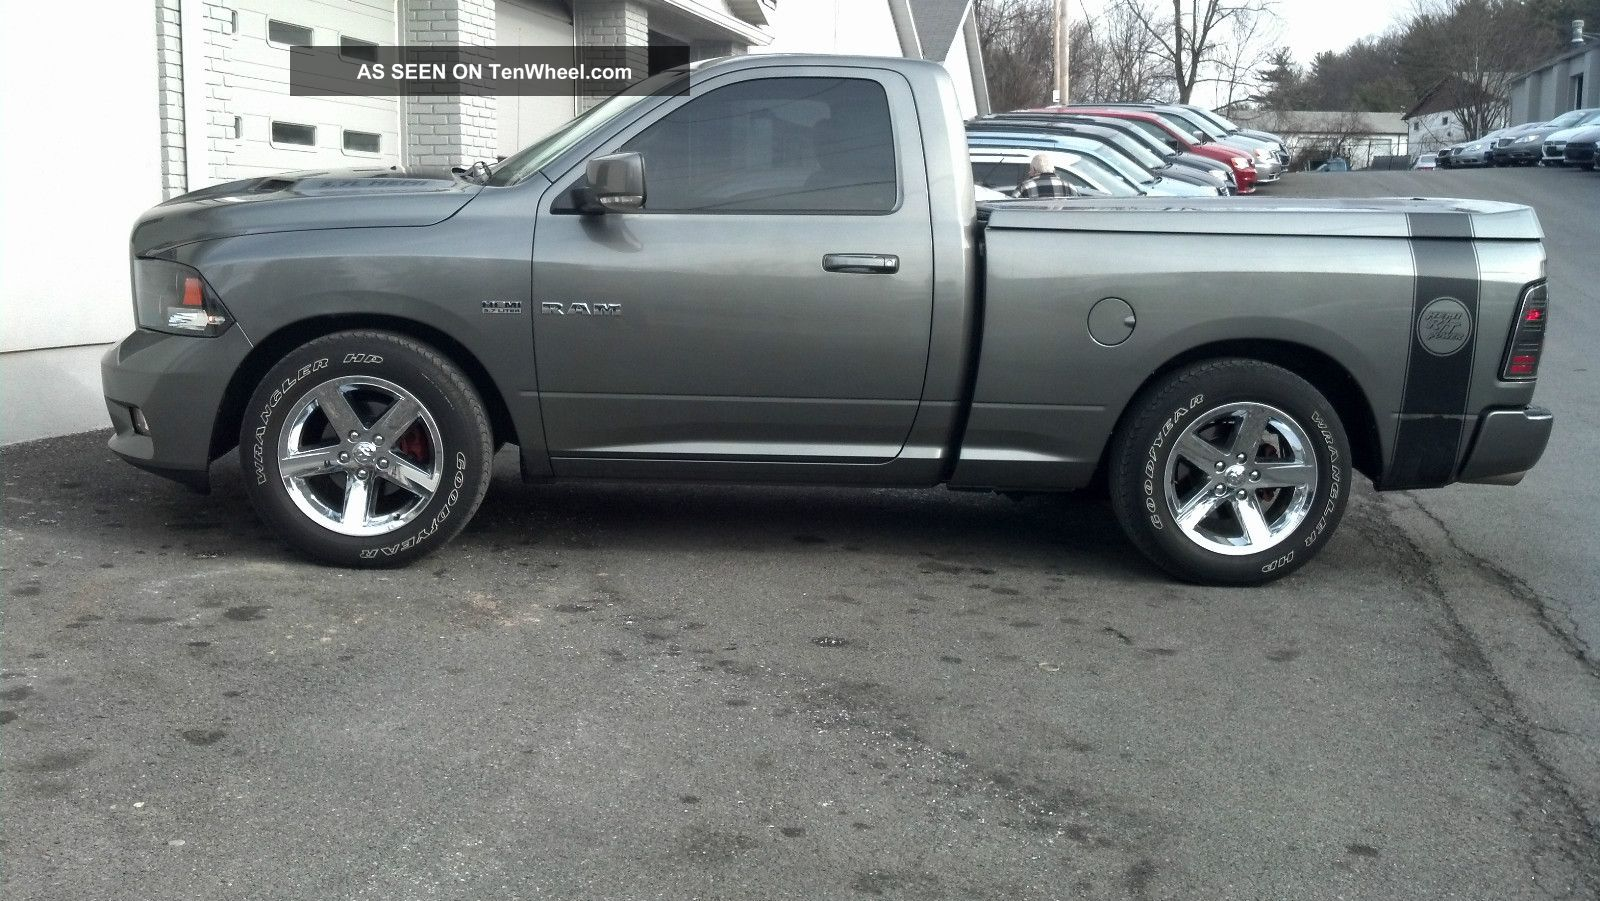 2010 dodge ram 1500 r t 4x2 hemi reg cab camera hard tonneau intake halo led. Black Bedroom Furniture Sets. Home Design Ideas